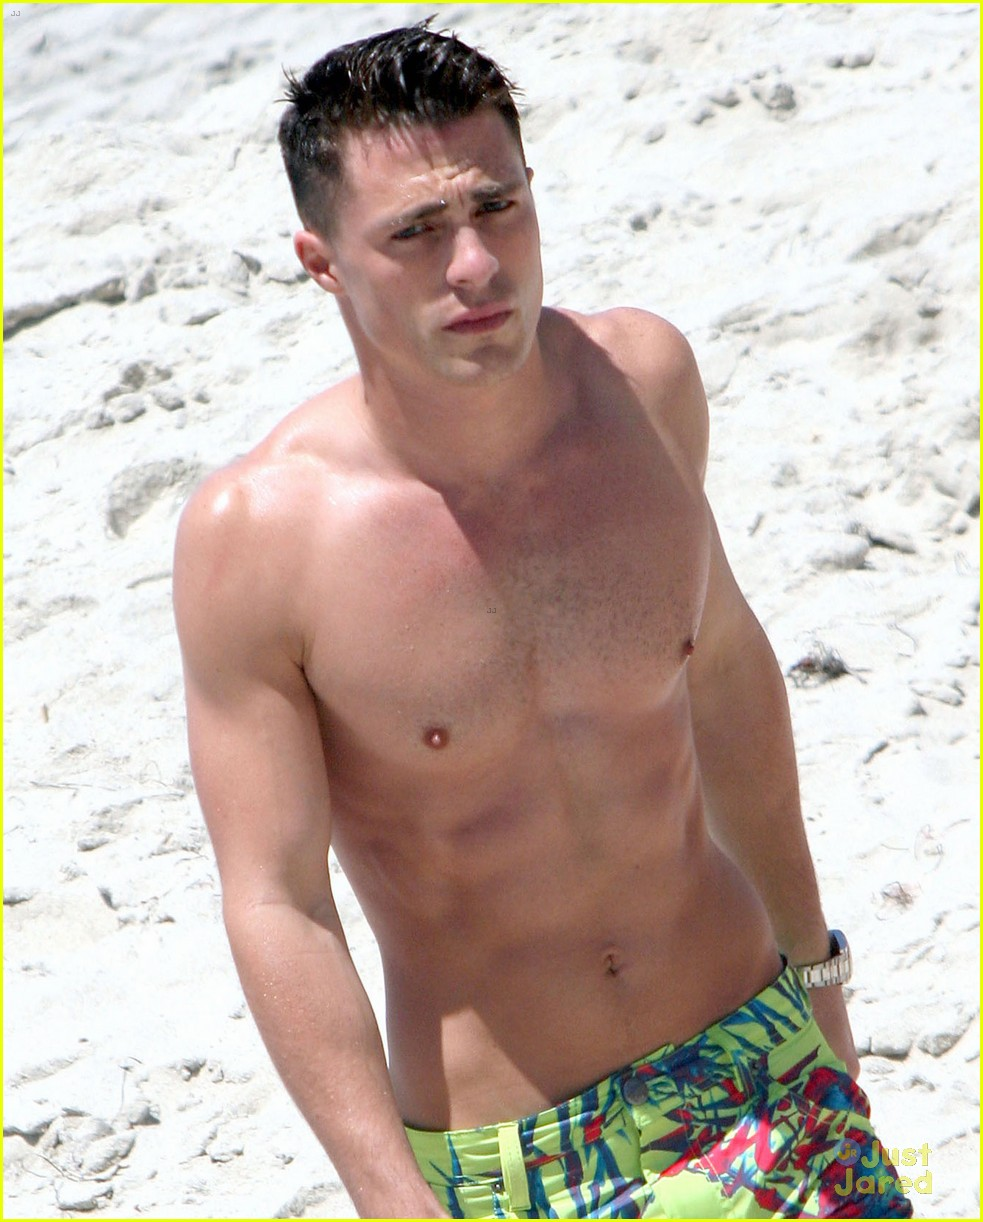 colton-haynes-shirtless-beach-05.jpg